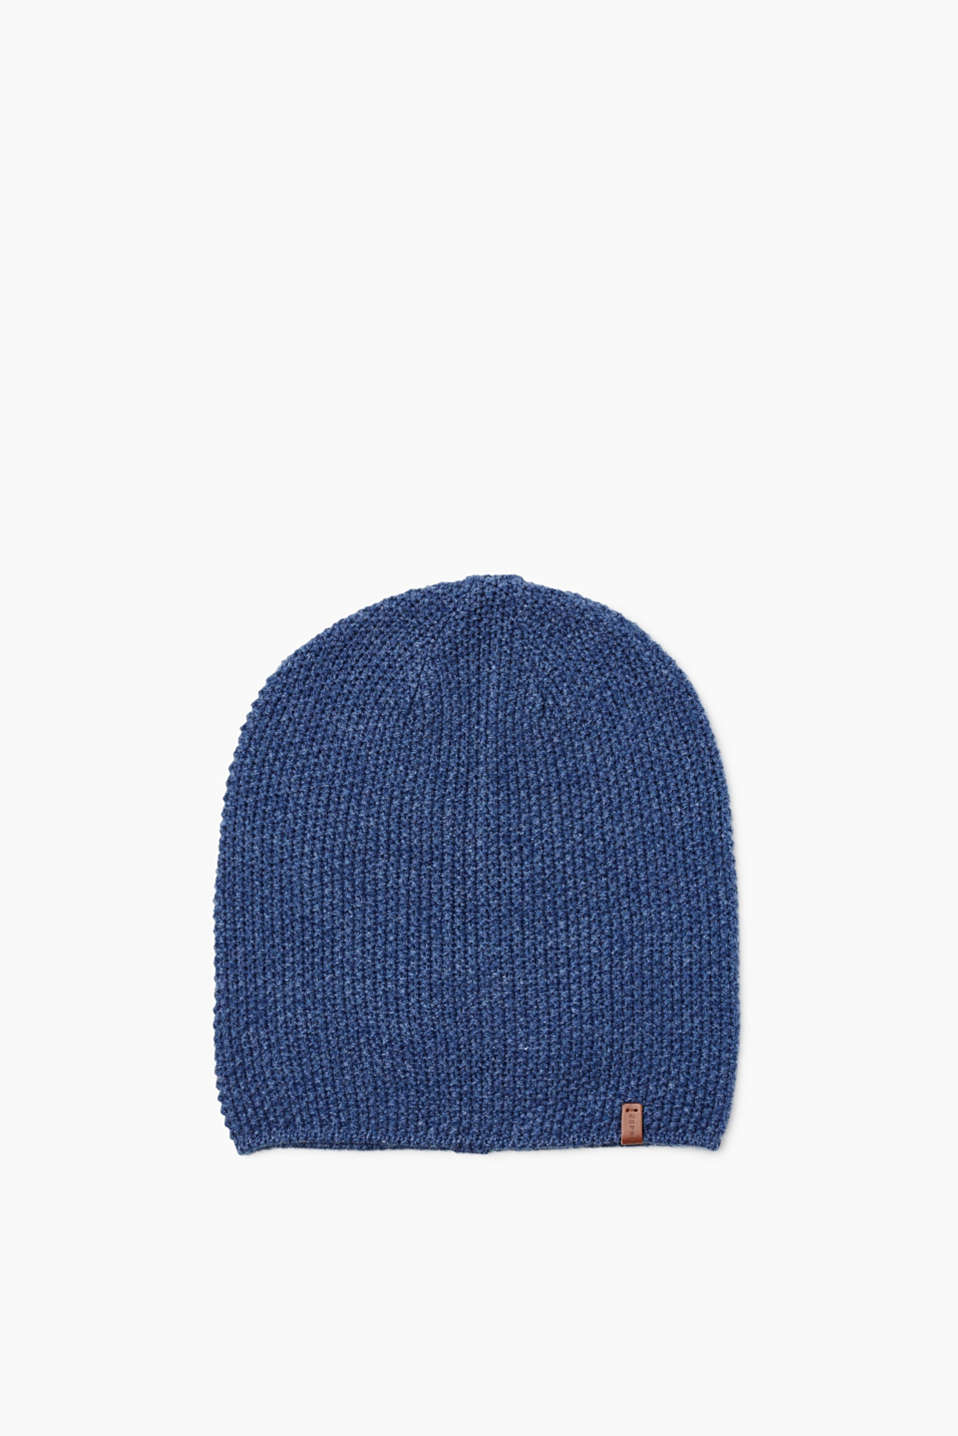 Thanks to the high-quality textured knit yarn, this warm beanie in classic colours is an eye-catching hat